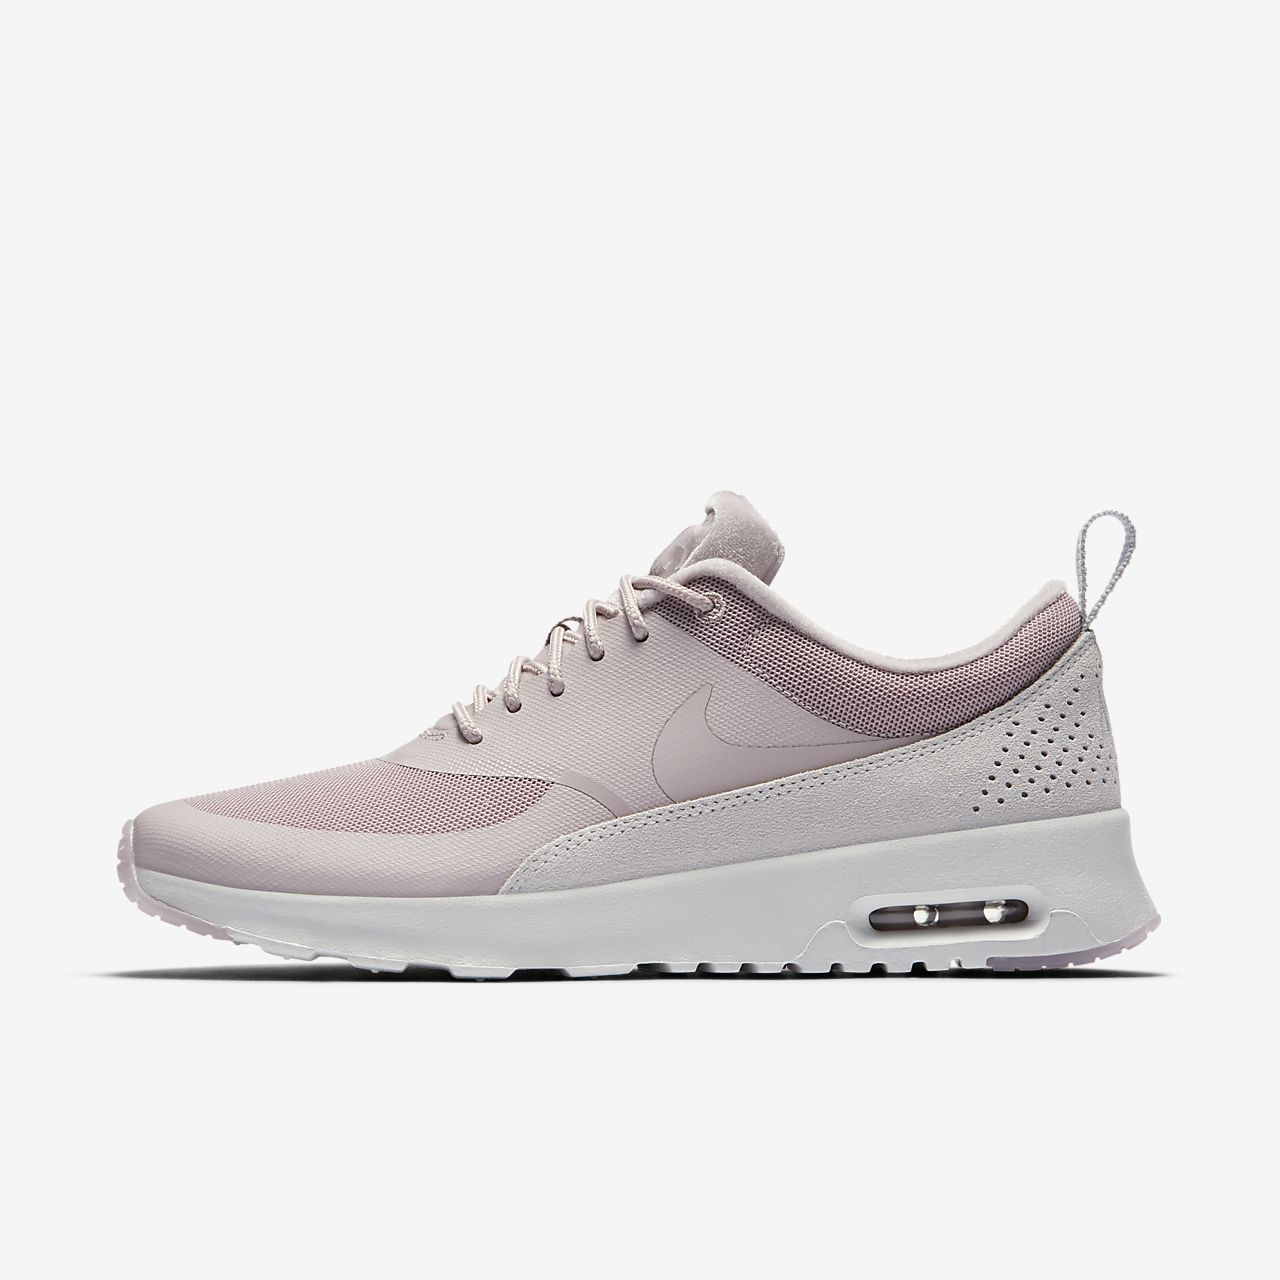 a97d02047fe Nike Thea : Buy Nike Sneakers & Shoes | Air force 1, Air max thea/97 ...